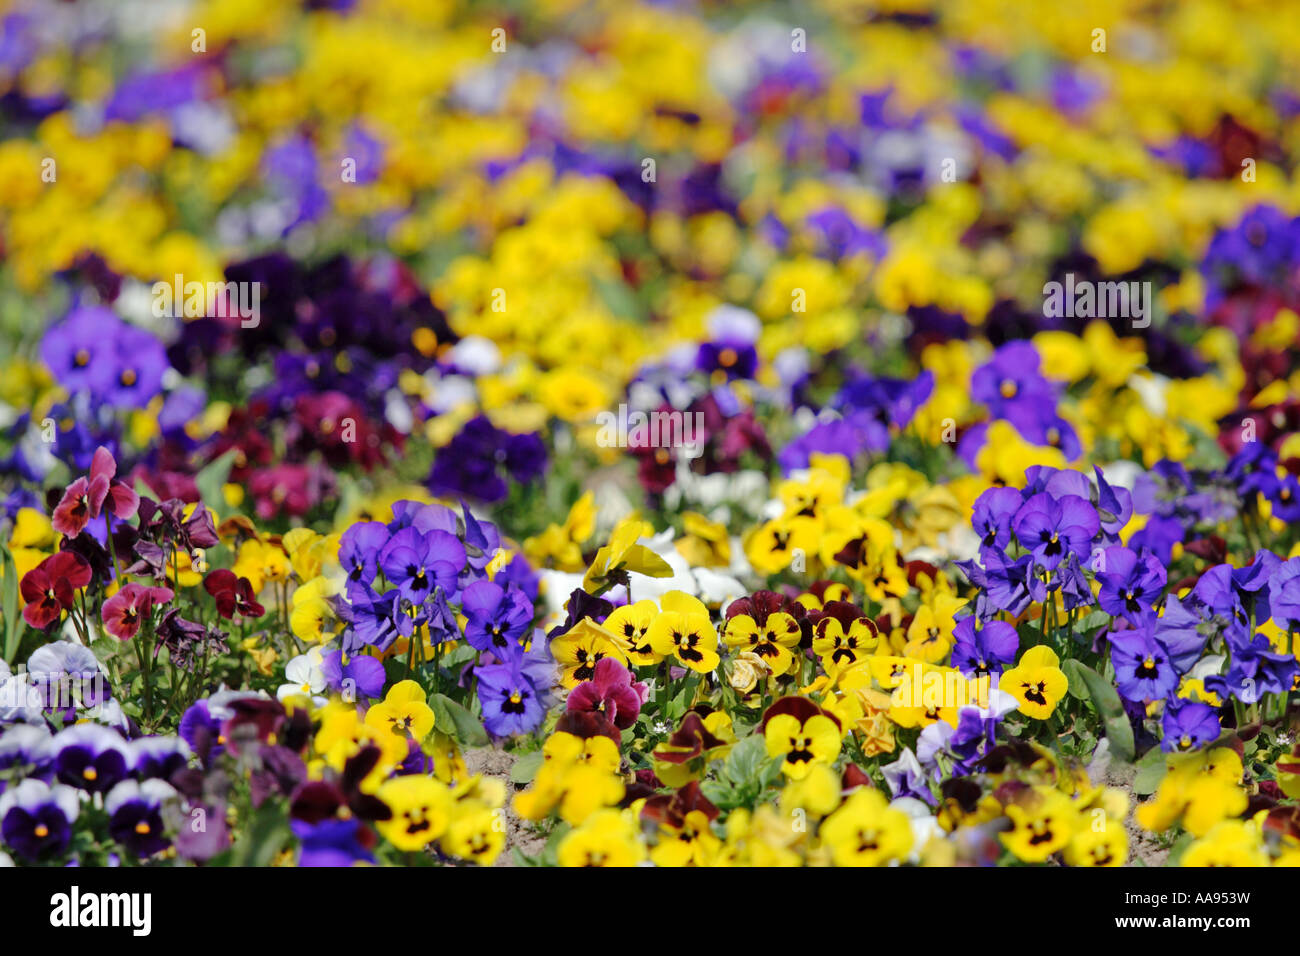 Garden of flowers - Stock Image